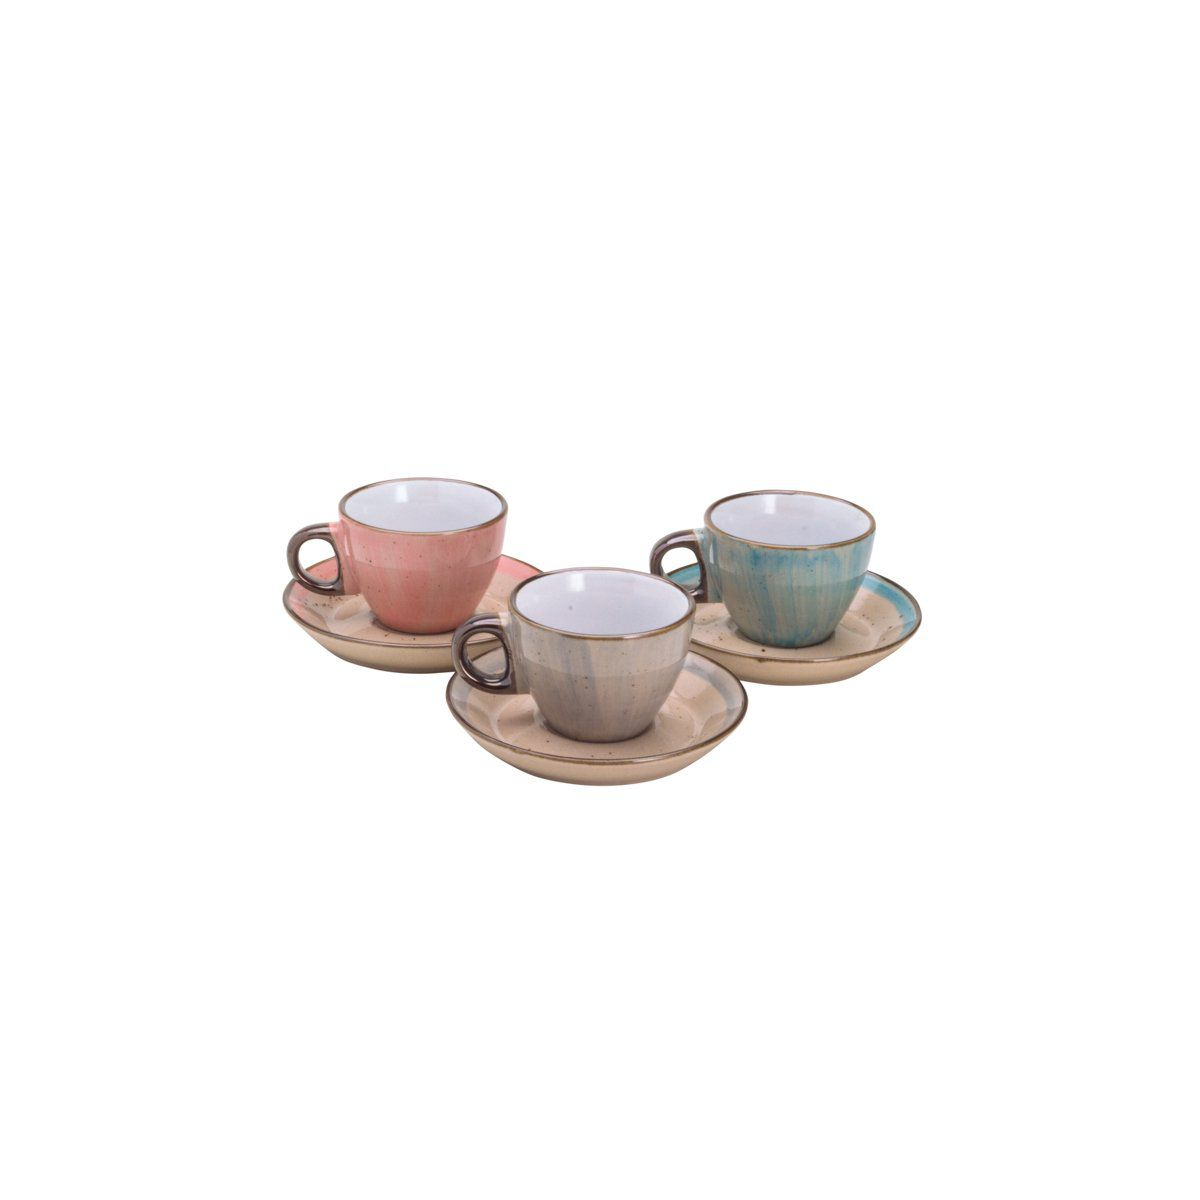 Jogo 6 xícaras 80 ml para café de porcelana colorida com pires Watercolor Bon Gourmet - 26490